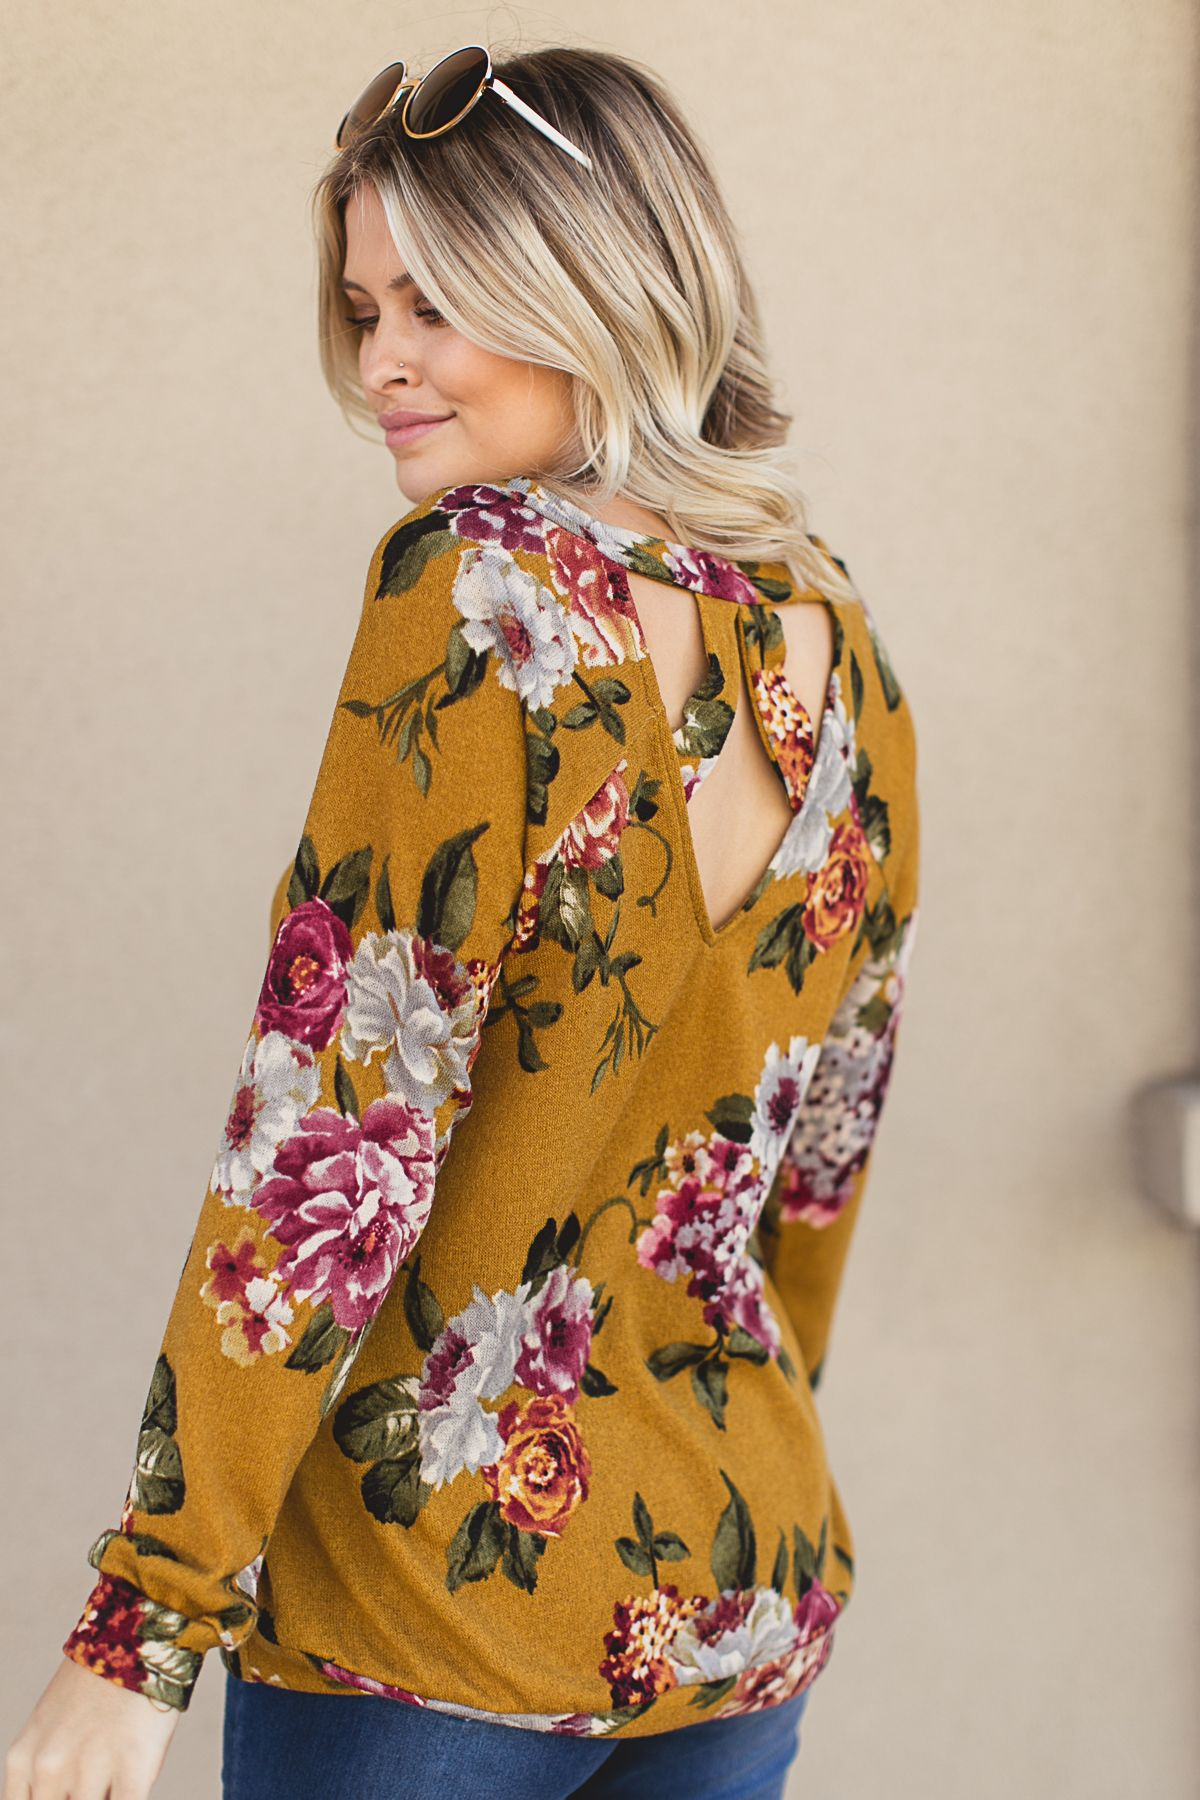 This mustard floral top is PERFECT to transition into spring